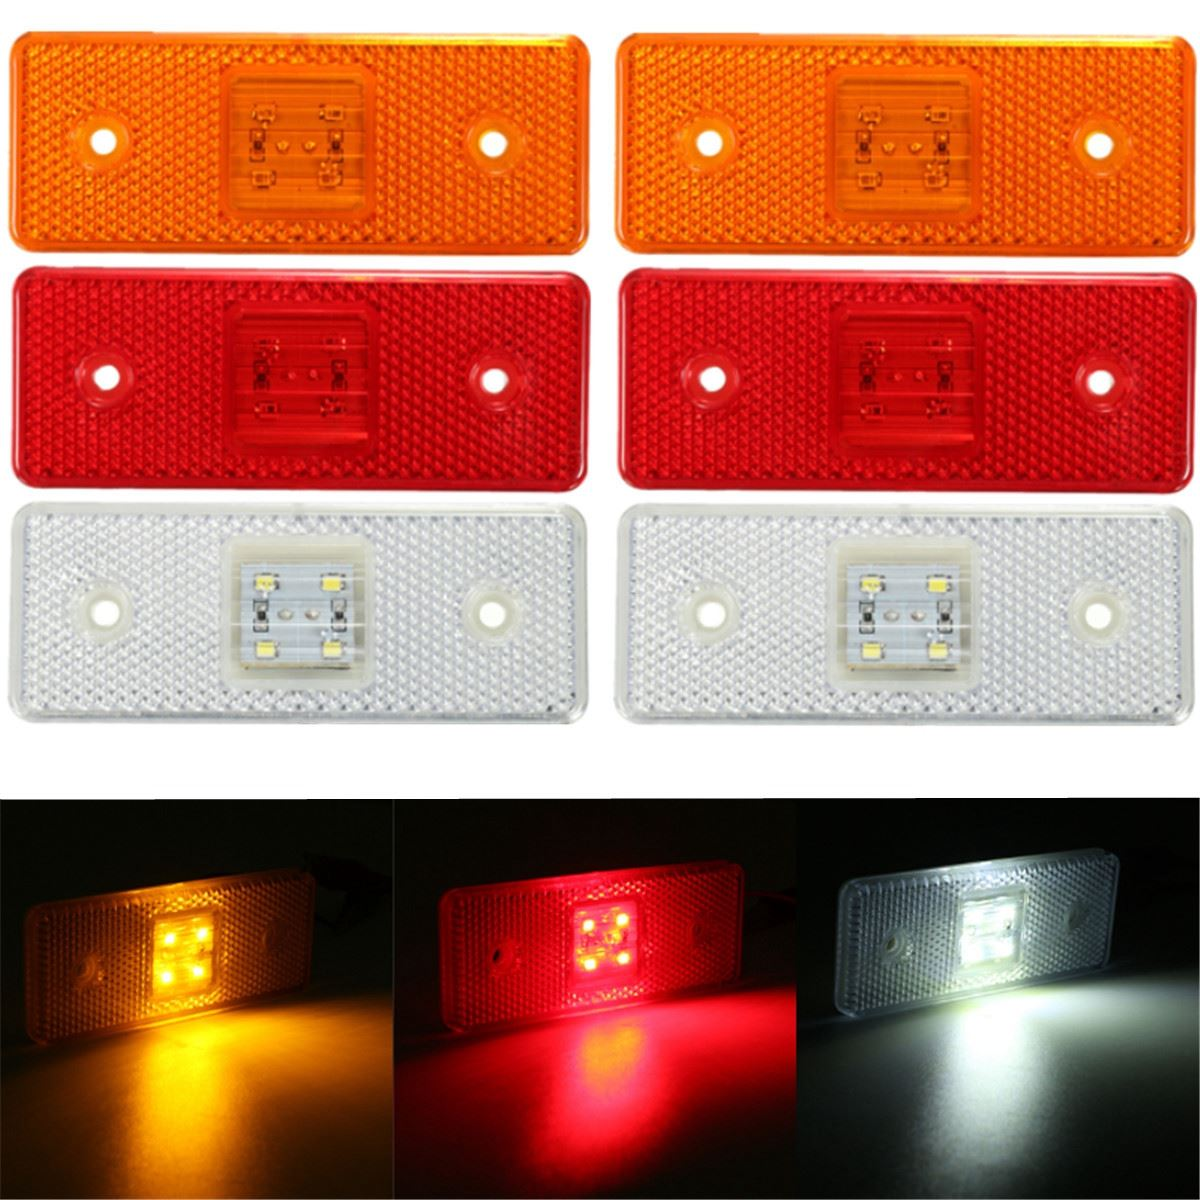 New 24V 4 LED Truck Trailer Lorry Side Marker Light Lamp Amber White Red 2x 12 24v led side outline stalk marker light lamp e8 e mark trailer truck lorry